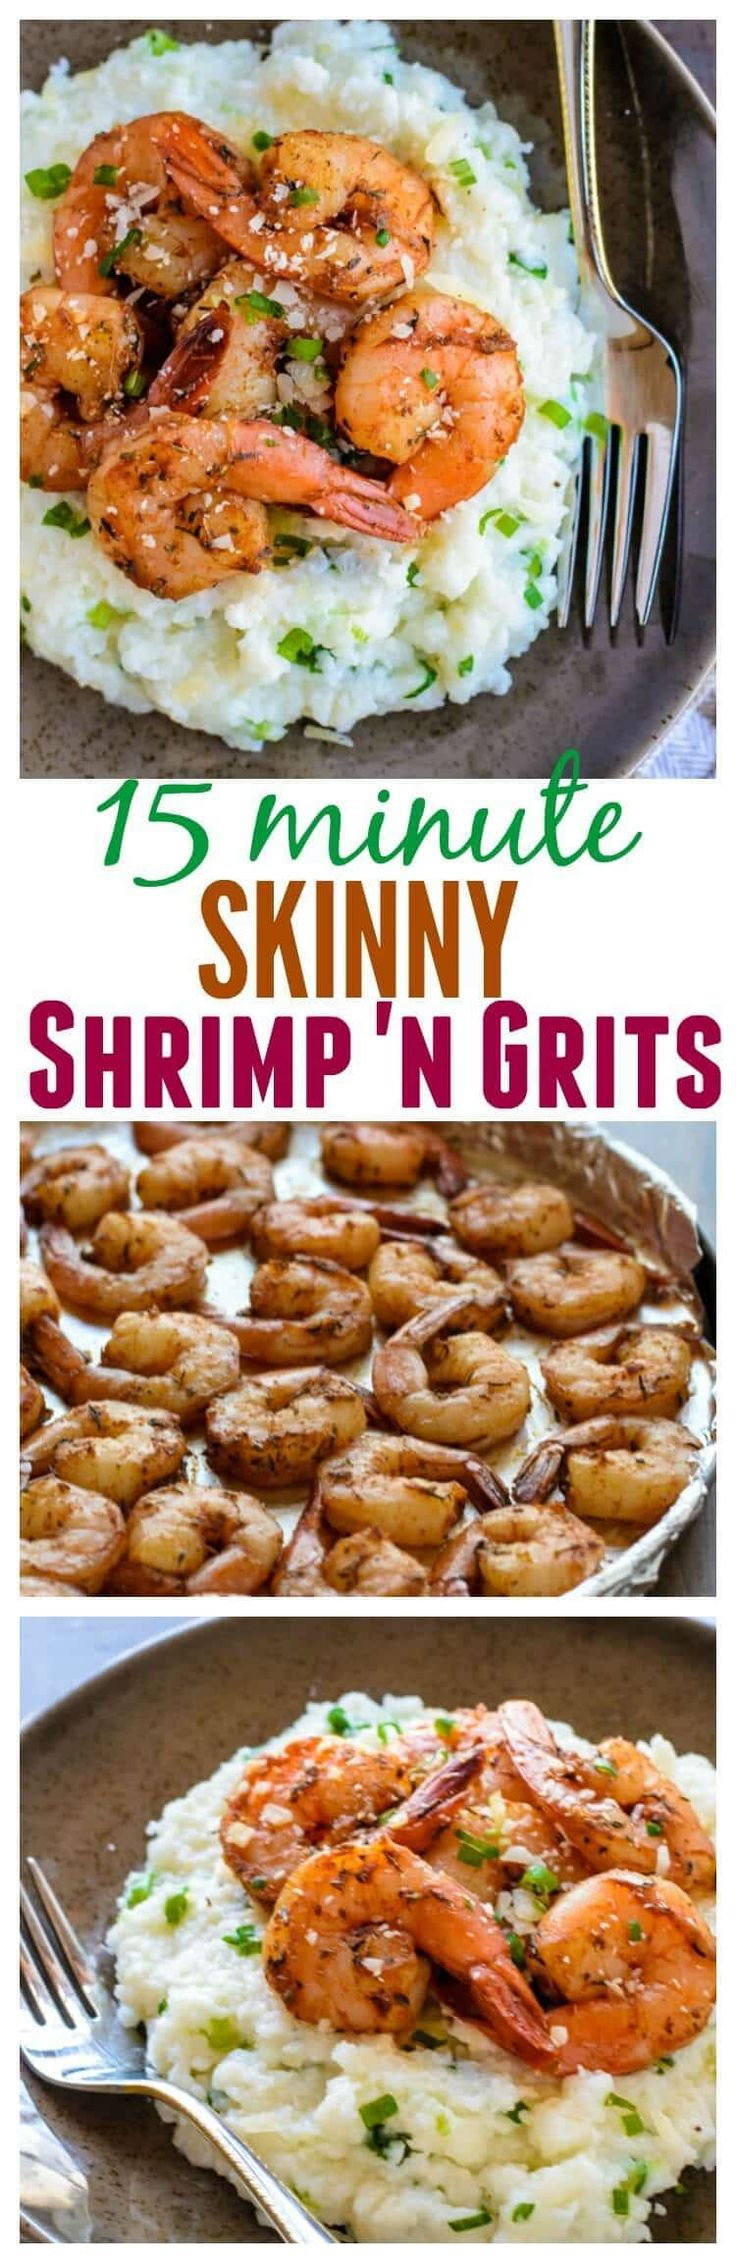 15 Minute Skinny Shrimp and Grits. I couldn't believe this was lightened up!